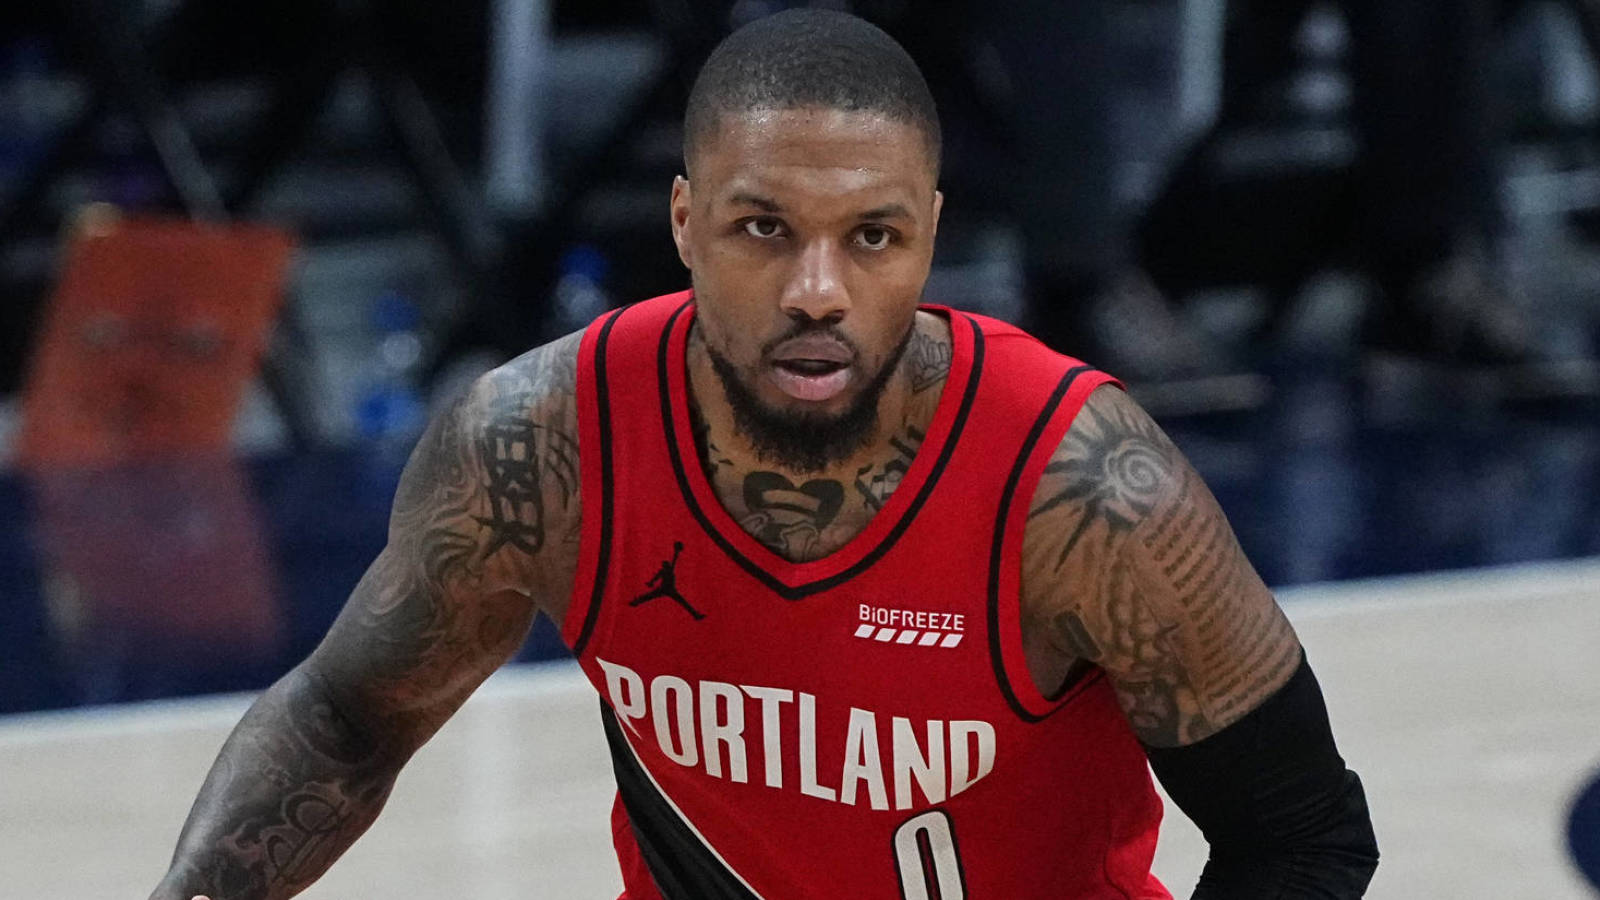 Why Damian Lillard is Going to the New York Knicks